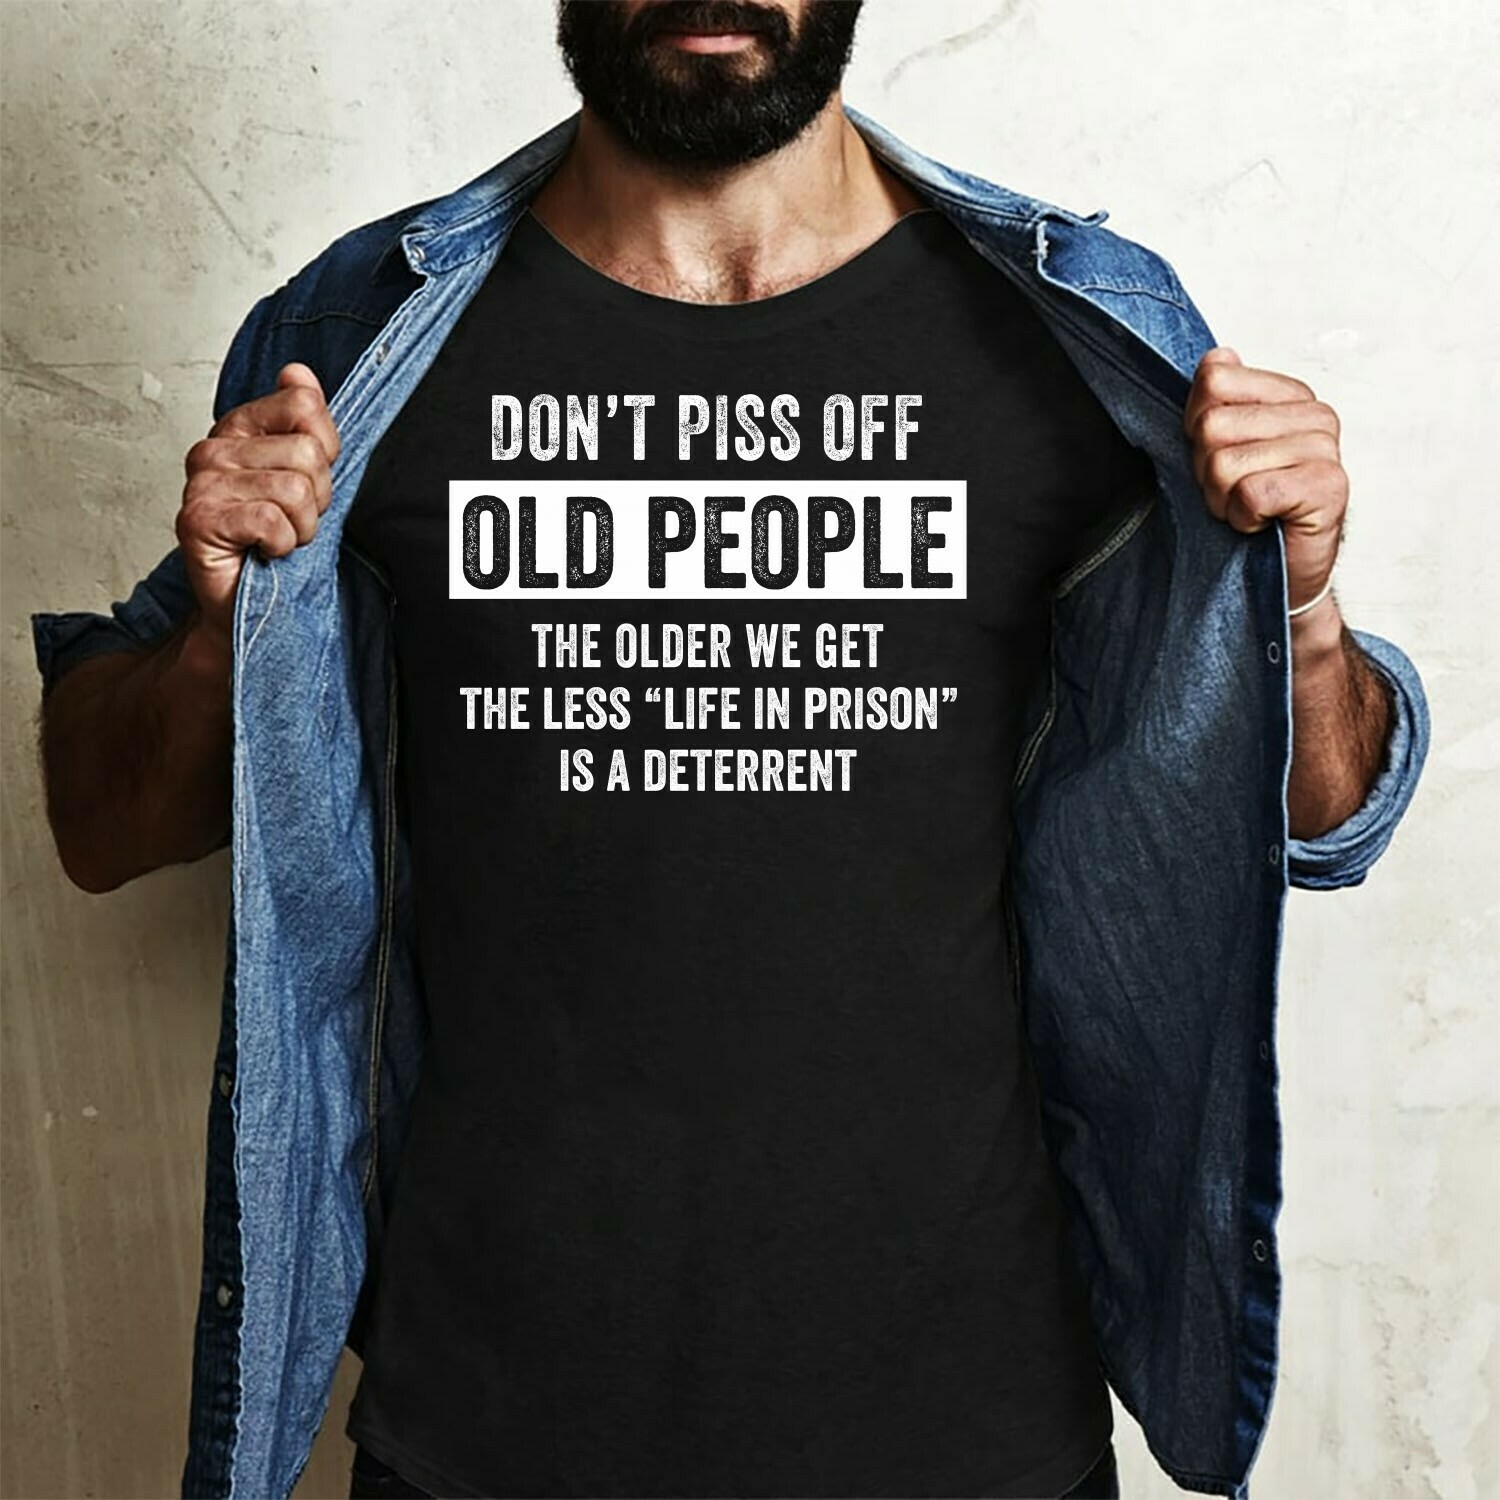 Don't Piss Off Old People The Older We Get The Less Life In Prison funny say,I Don't Need Anger Management Fun Sarcastic AntiSocial  T-Shirt Hoodie Sweatshirt Sweater Tee Kids Youth Gifts Jolly Family